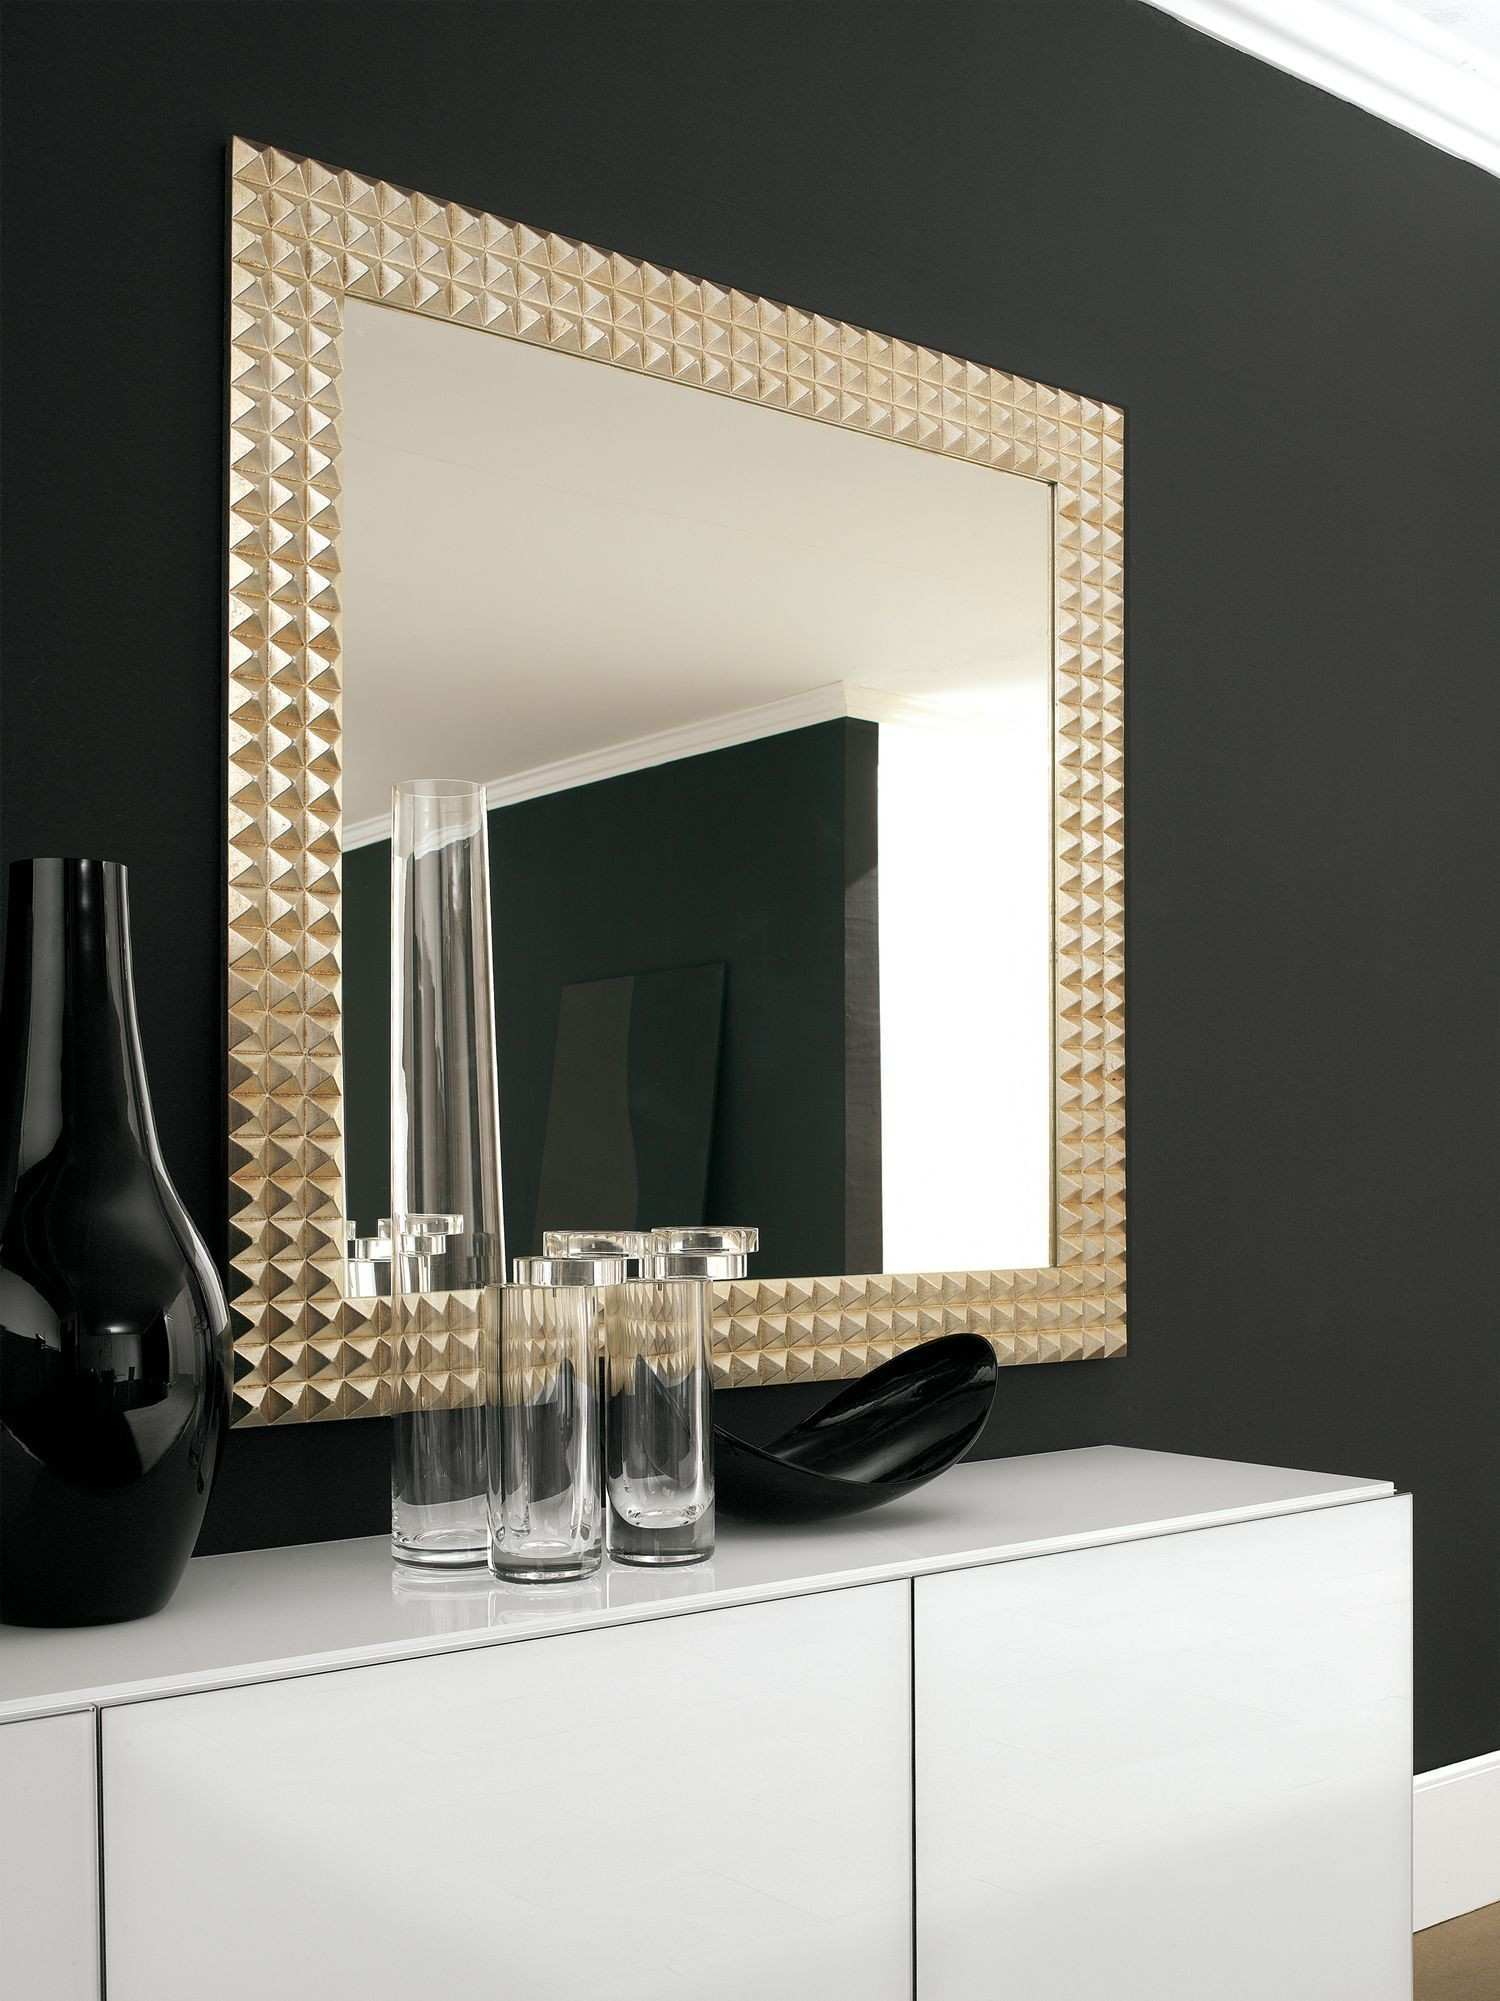 The Egypt is a stunning wall mirror with a gold or silver foil